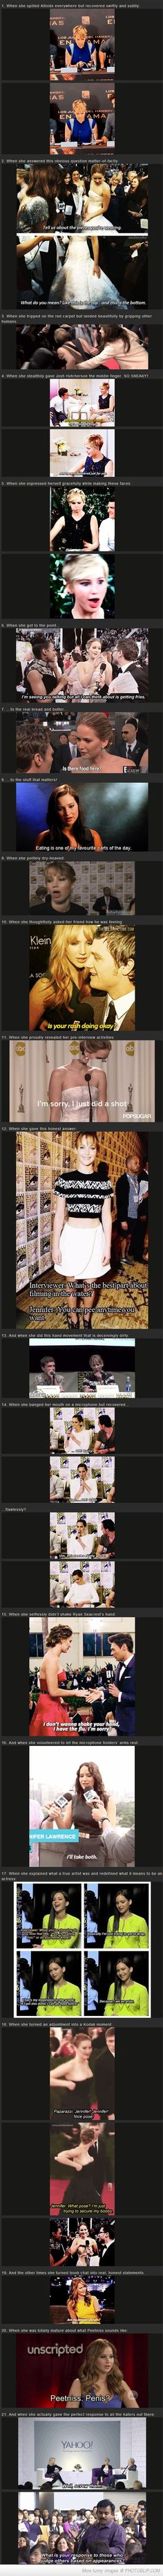 21 Times Jennifer Lawrence Totally Nailed The Whole Interview Thing